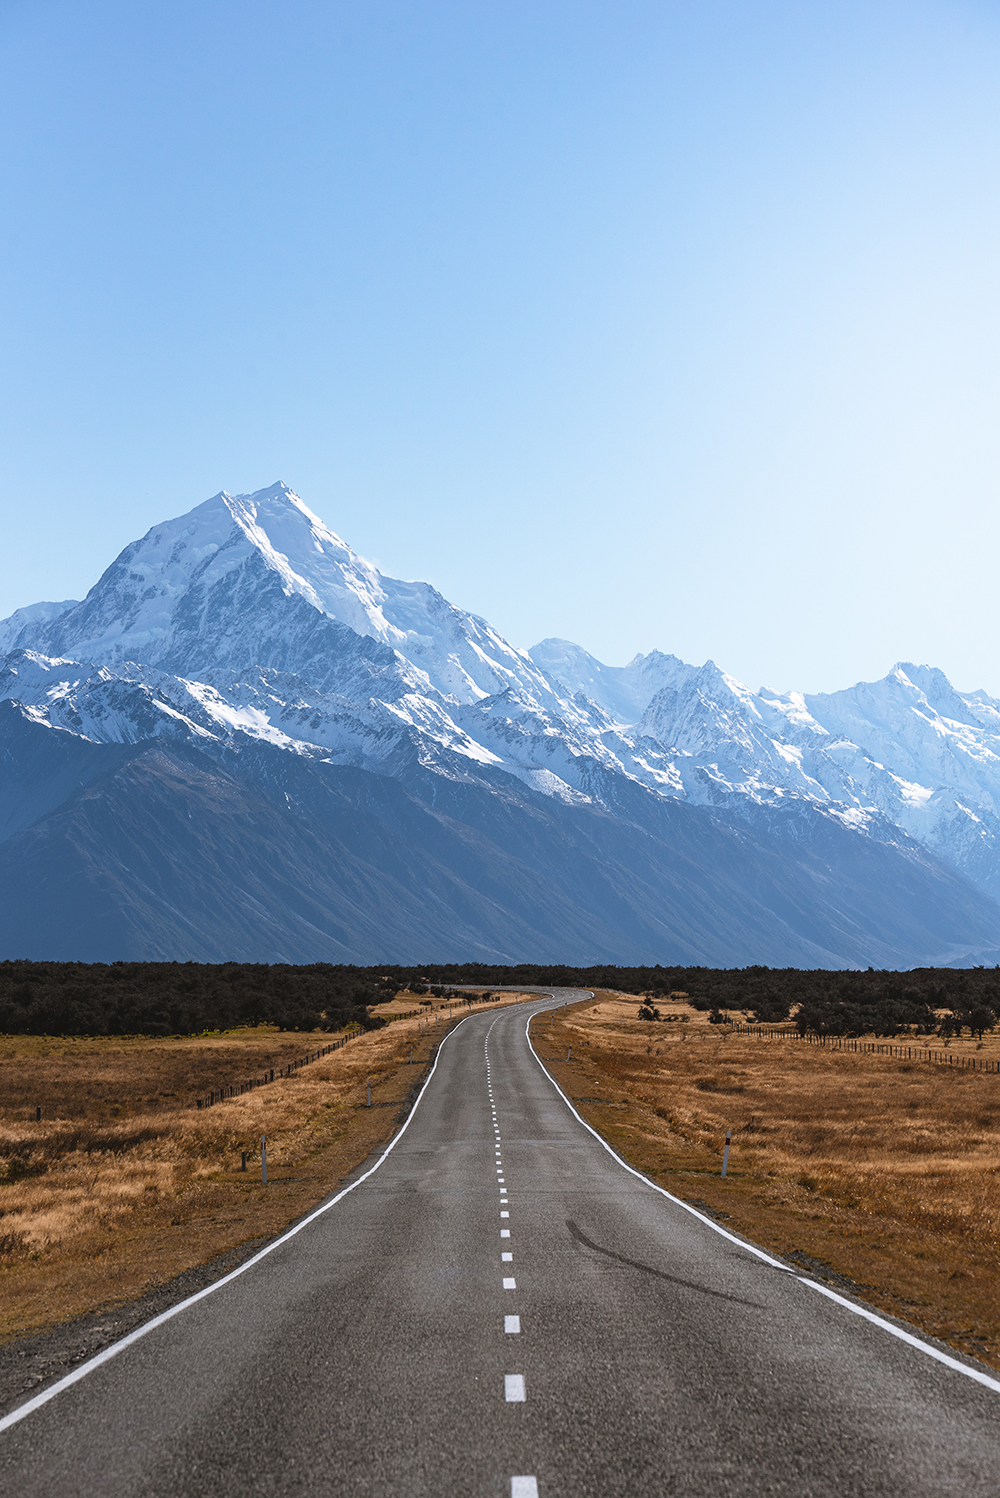 The view towards Mount Cook in the South Island.